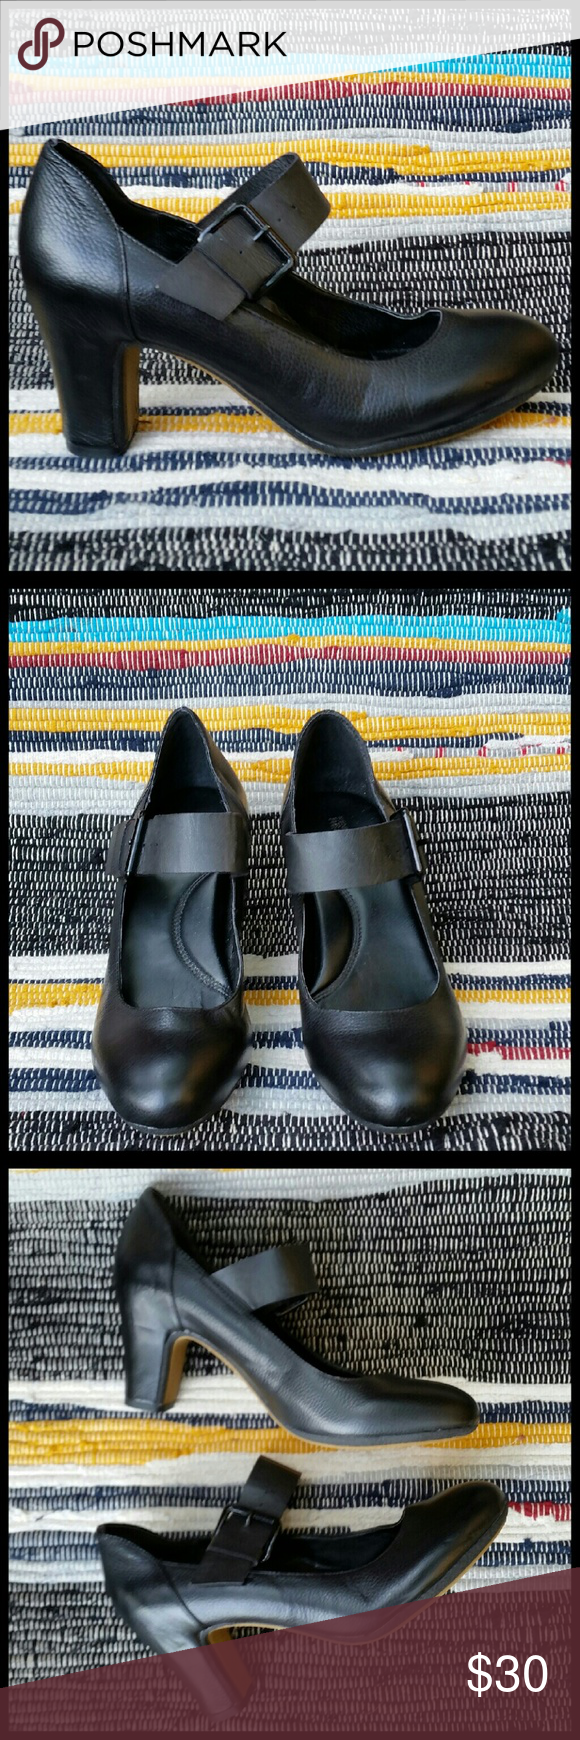 Kenneth Cole Reaction Mary Jane Heels Chunky Black Leather Mary Janes w/padded foot bed and 2.5 heel. Very soft  and comfortable. Very little signs of wear. Great condition. Kenneth Cole Reaction Shoes Heels